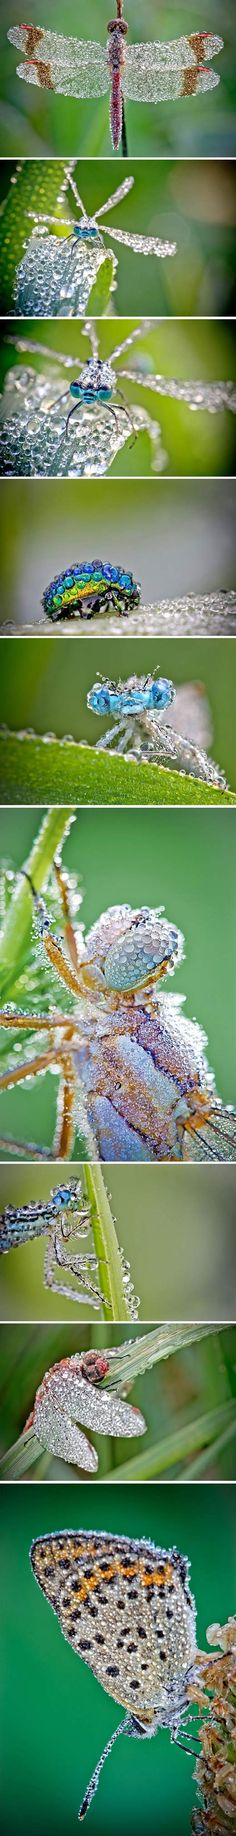 Insects with water drops, so neat!